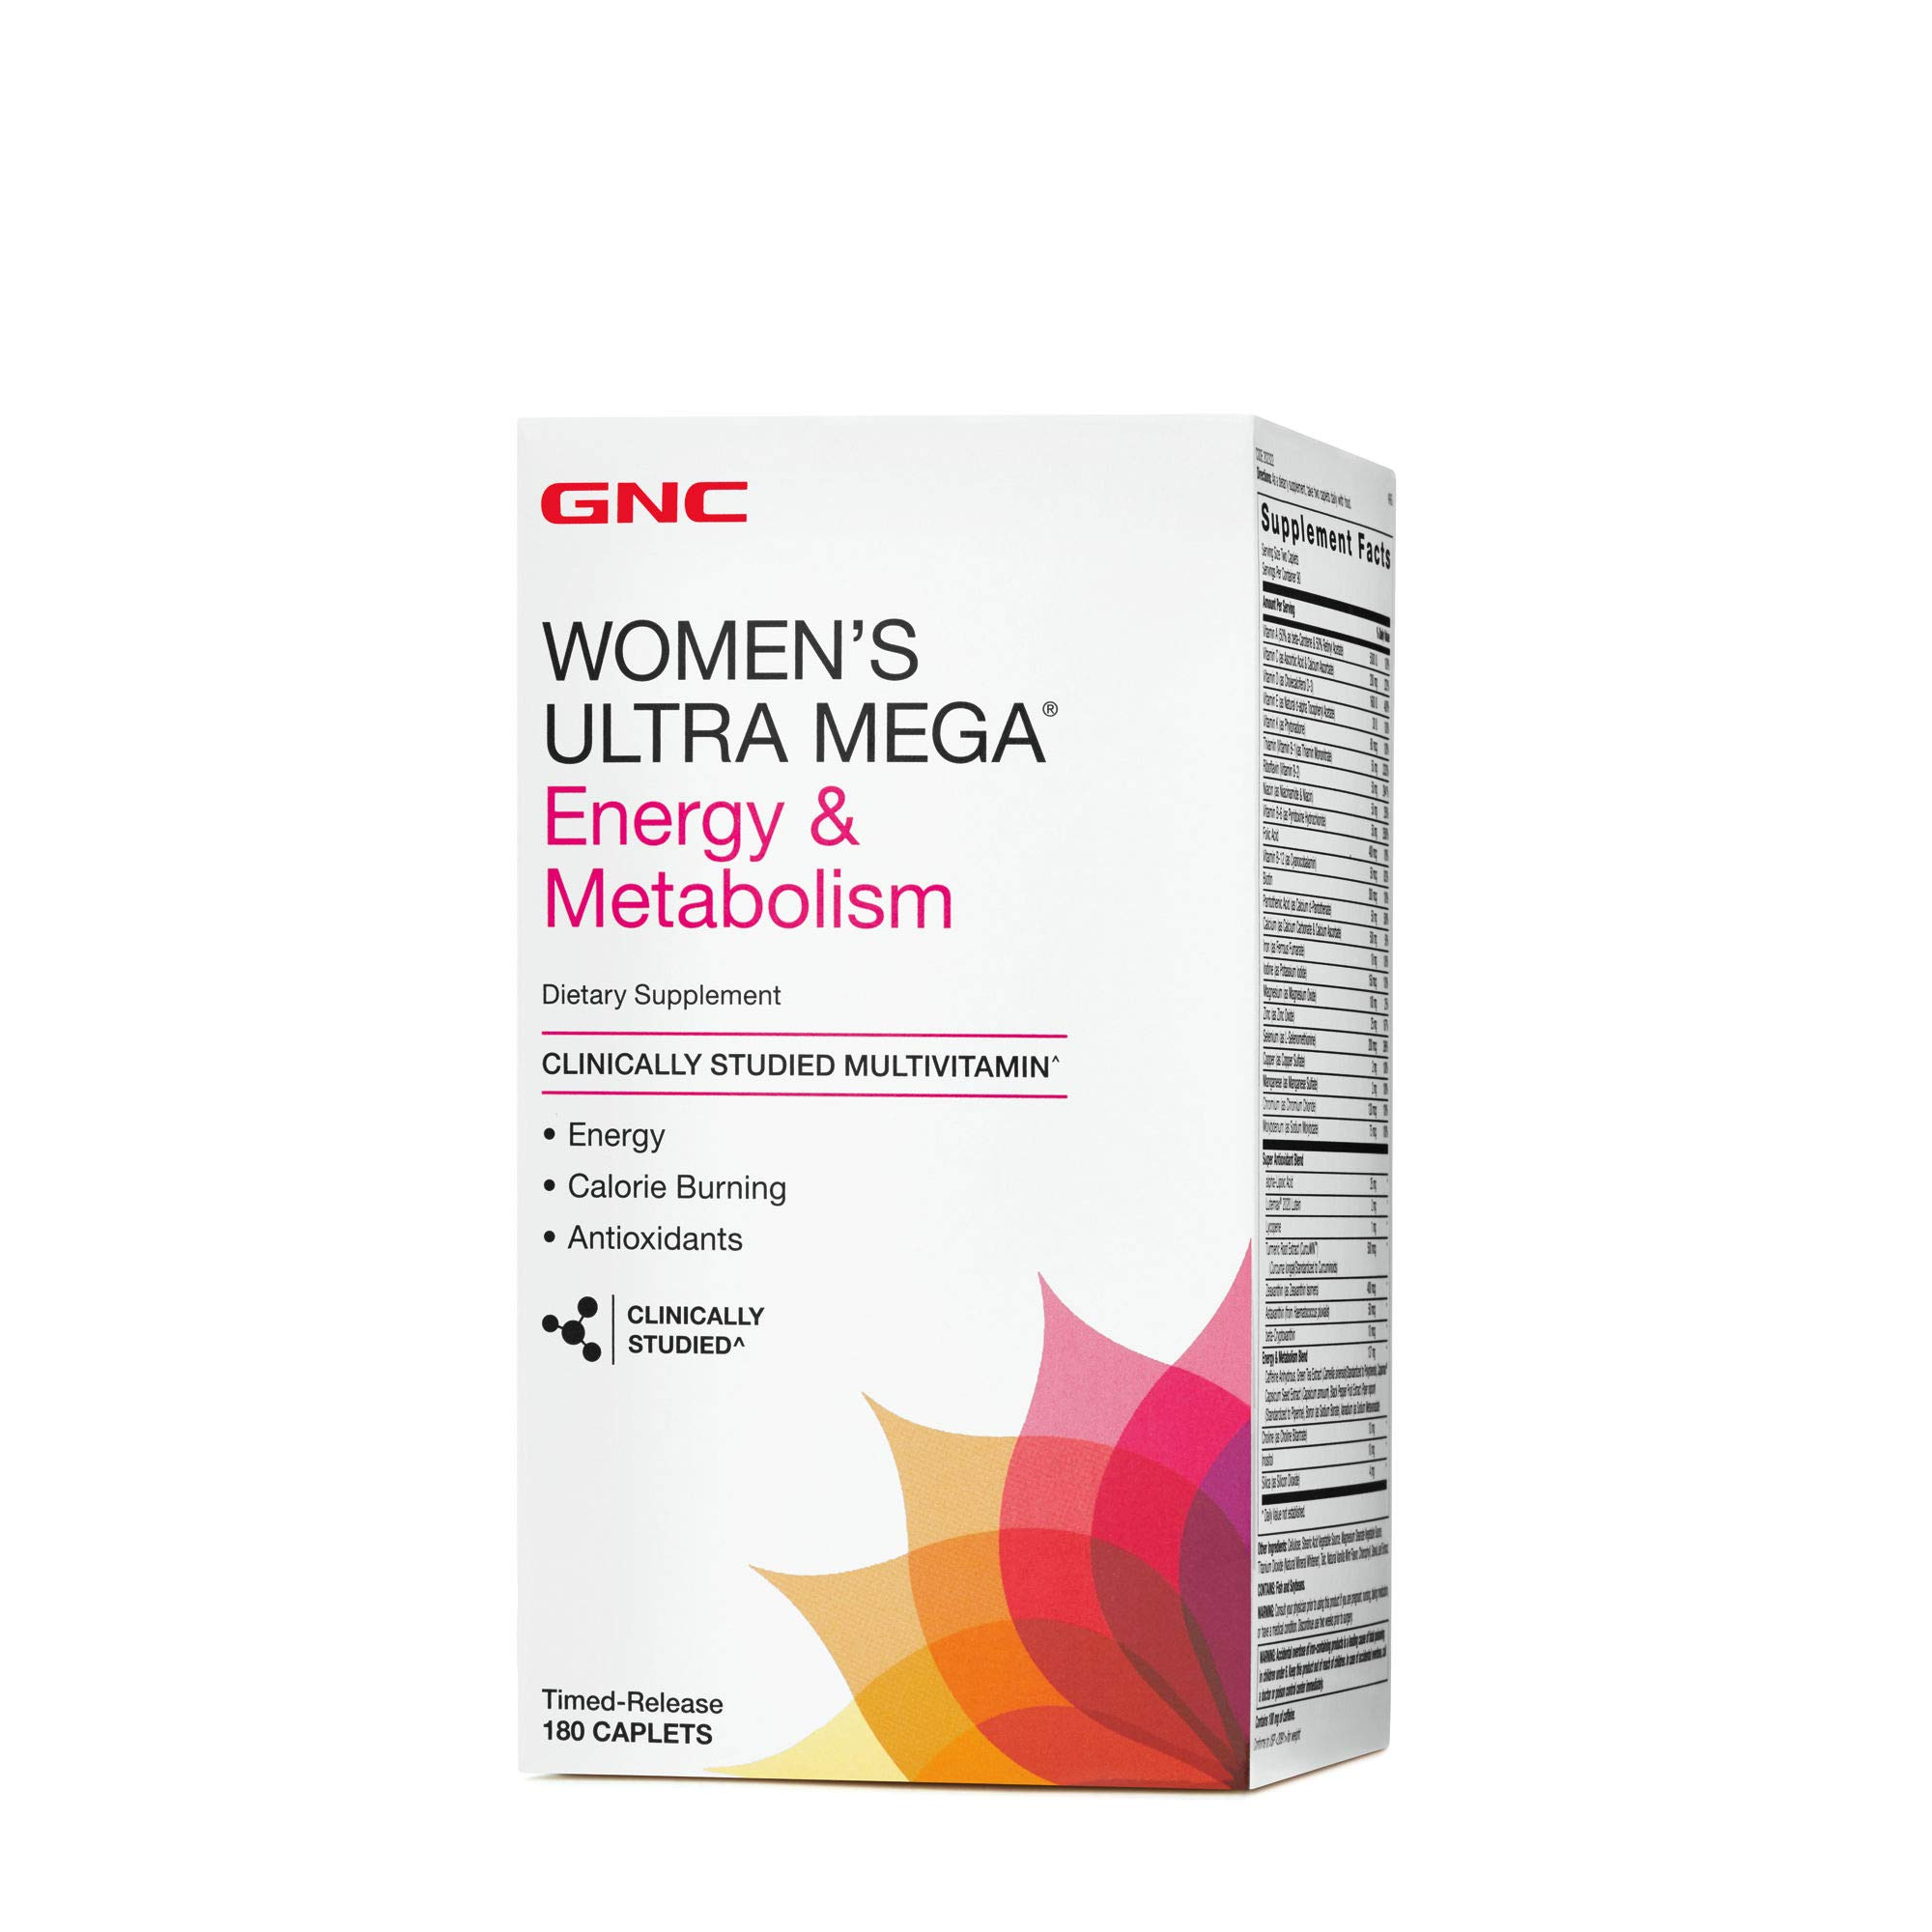 GNC Womens Ultra Mega Energy and Metabolism Multivitamin for Women, 180 Count, for Increased Energy, Metablism, and Calorie Burning by GNC